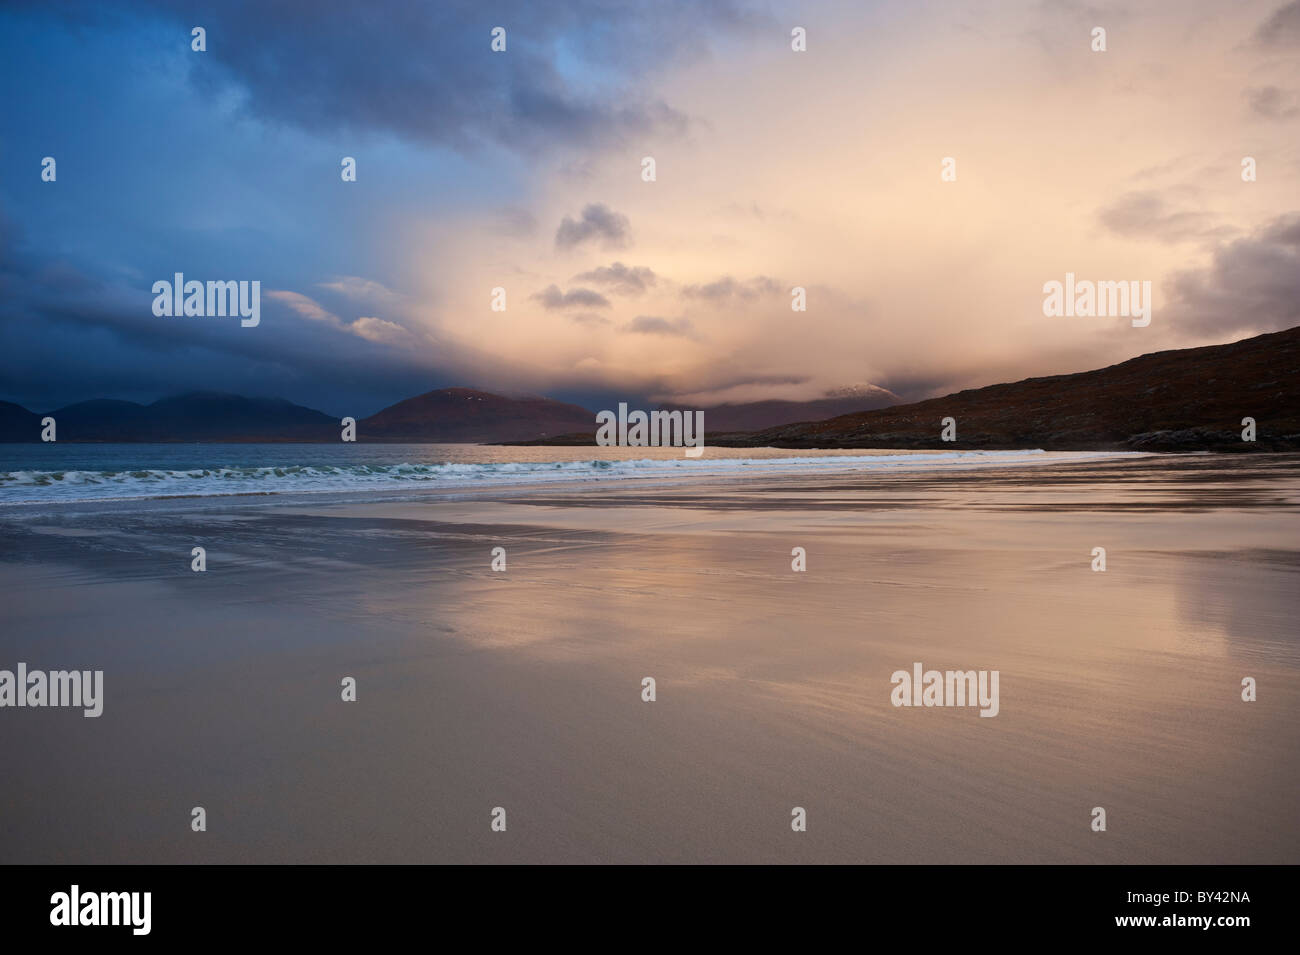 Rain clouds at sunset over Luskentyre beach, Isle of Harris, Outer Hebrides, Scotland Stock Photo